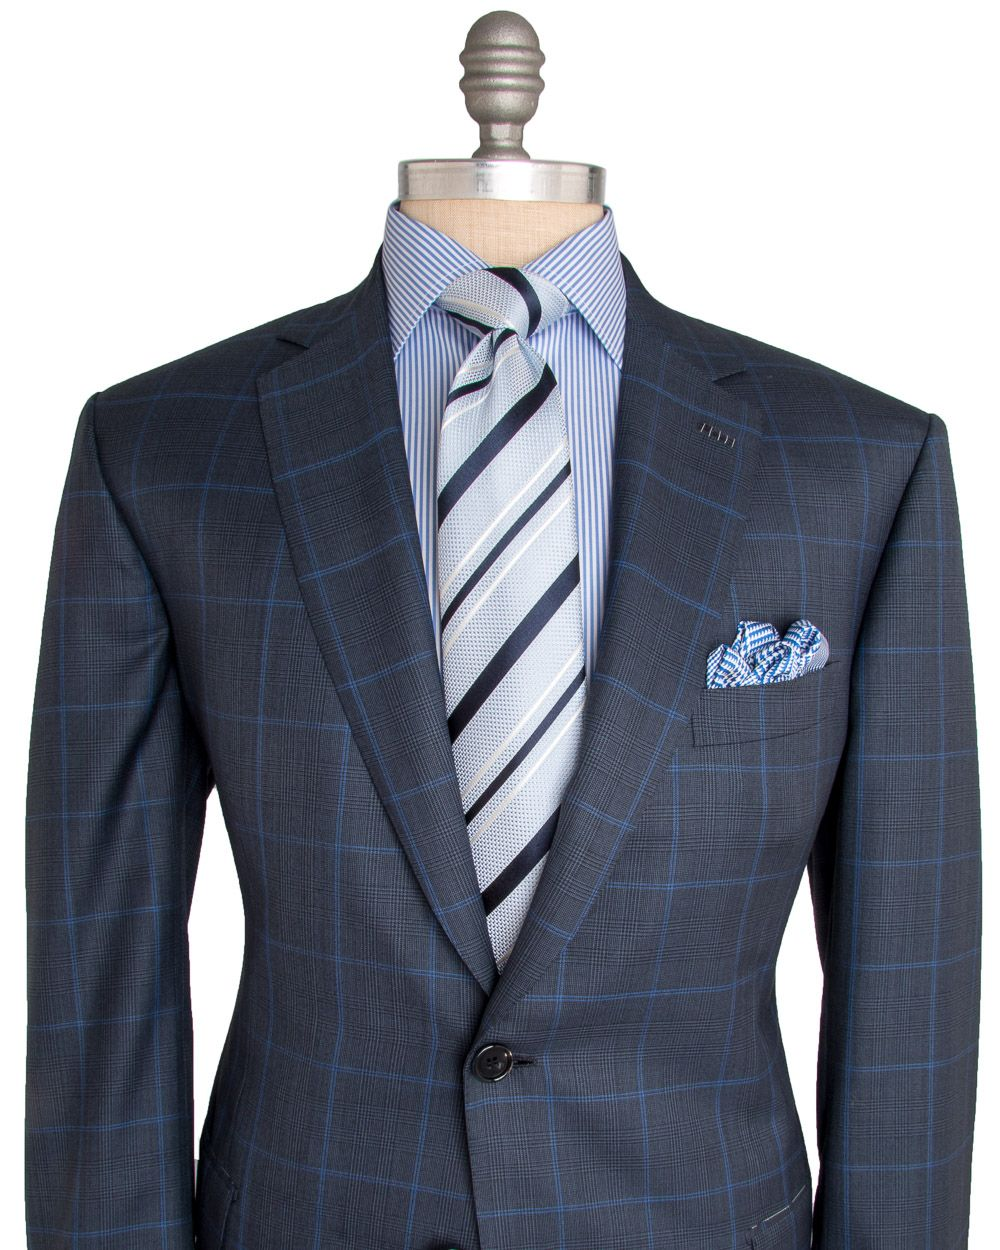 Brioni Navy and Blue Plaid Suit 2 button jacket Notch lapel Blue ...